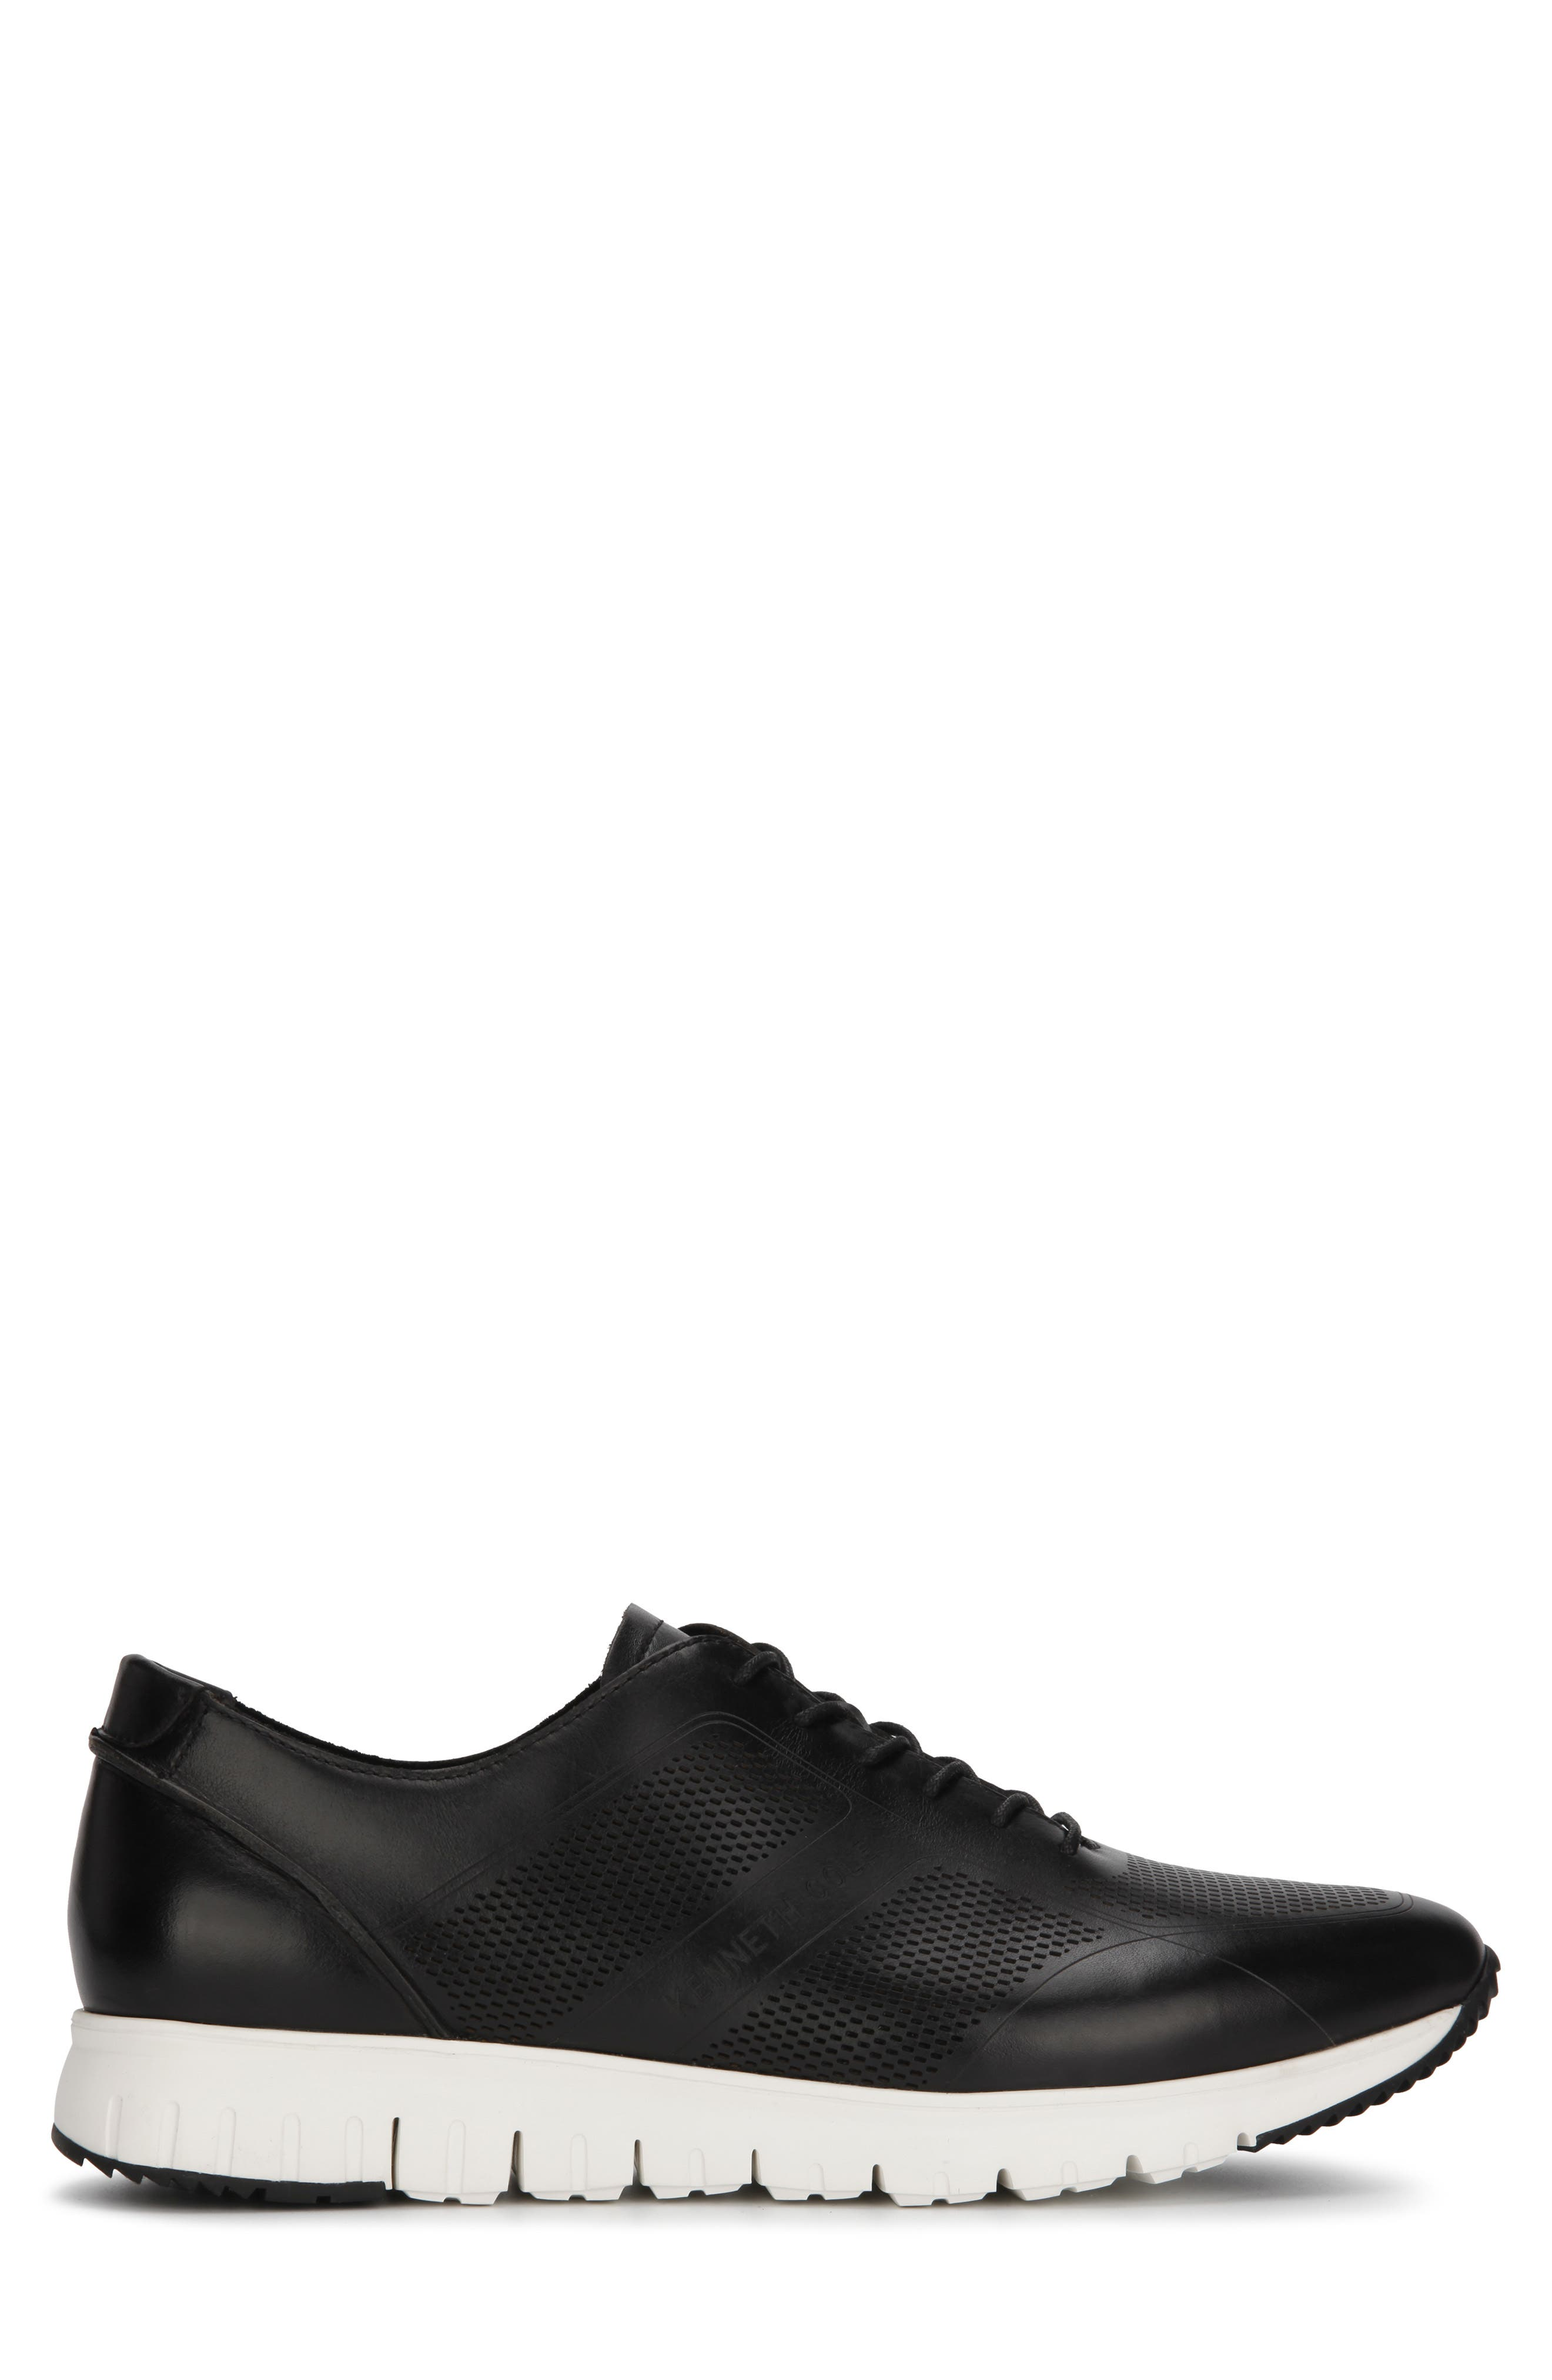 KENNETH COLE NEW YORK, Bailey Sneaker, Alternate thumbnail 2, color, BLACK LASERED LEATHER